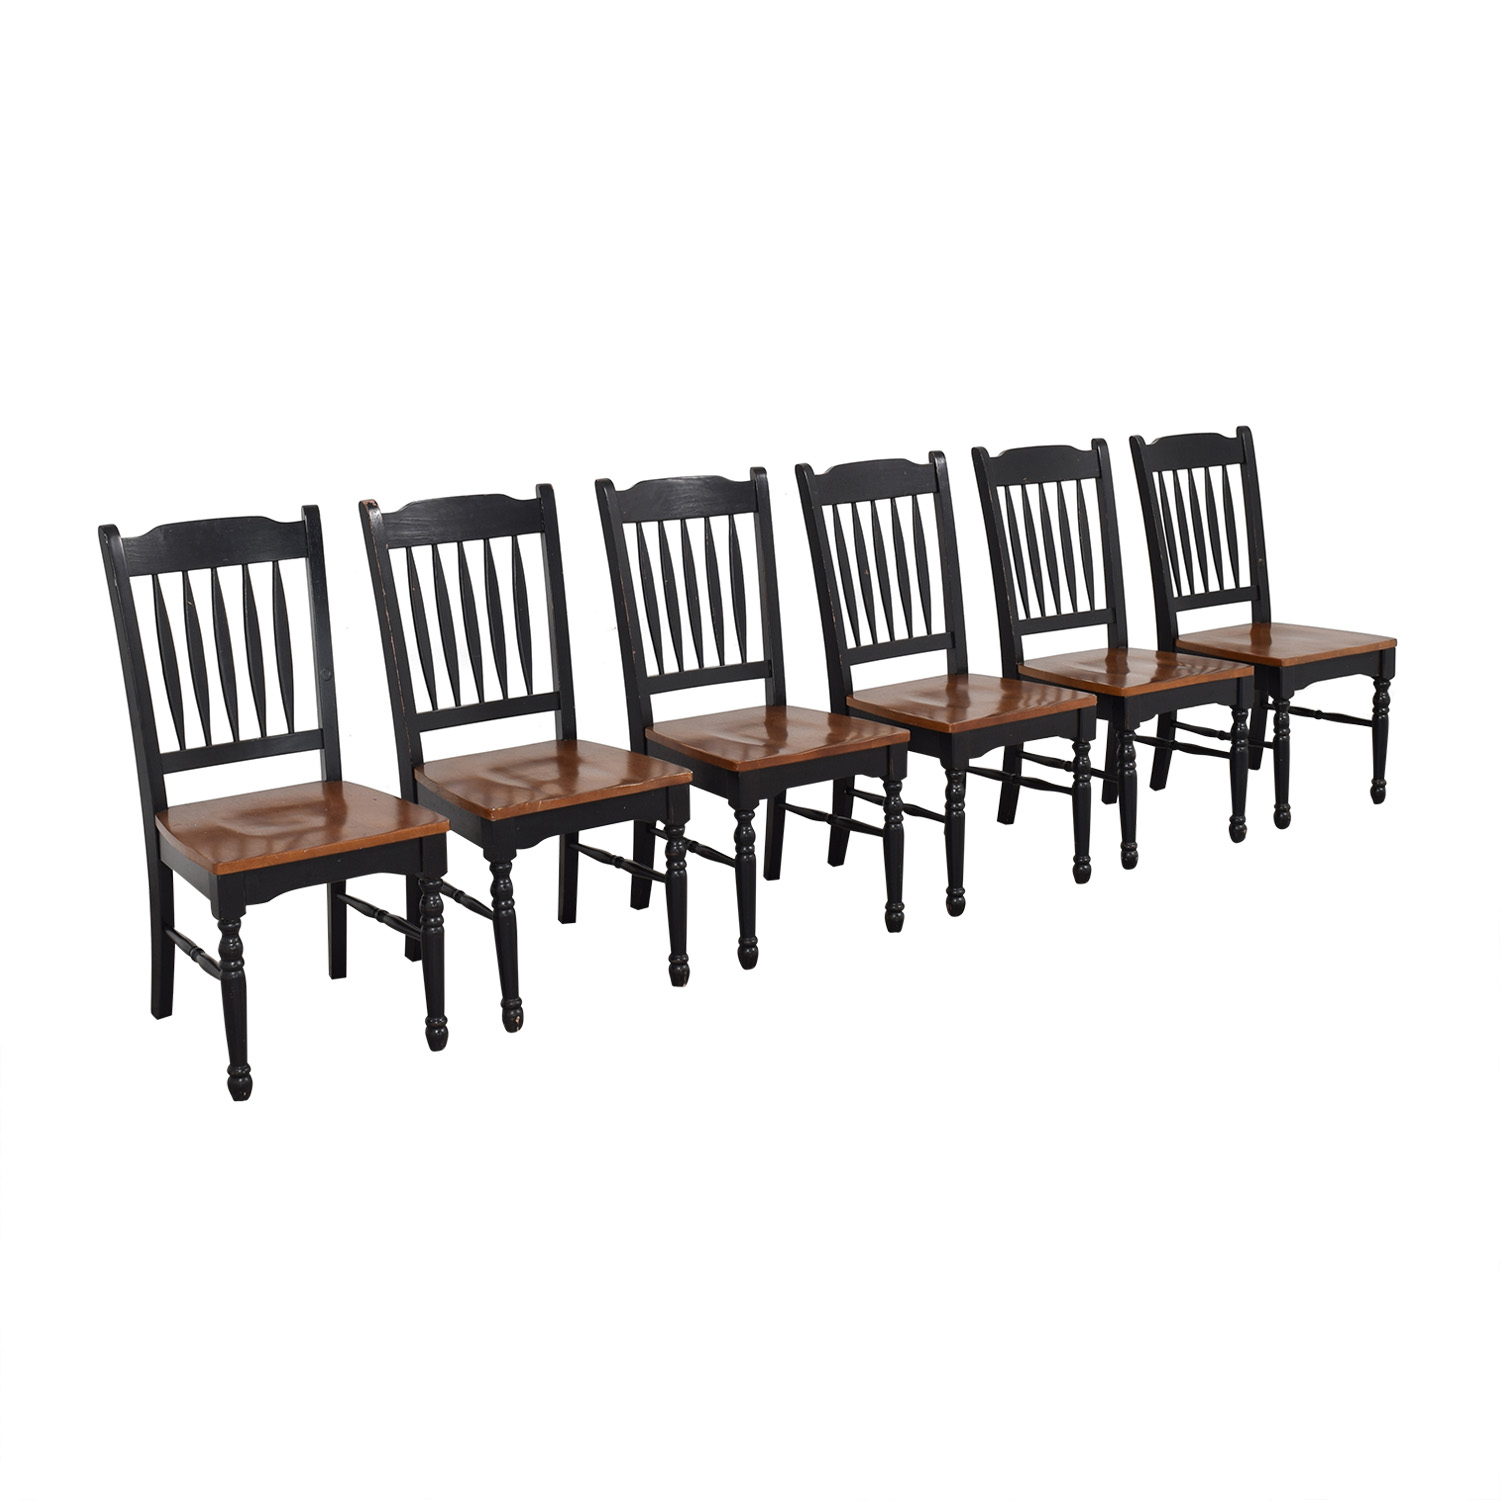 shop Pottery Barn Pottery Barn Spindle Back Dining Chairs online